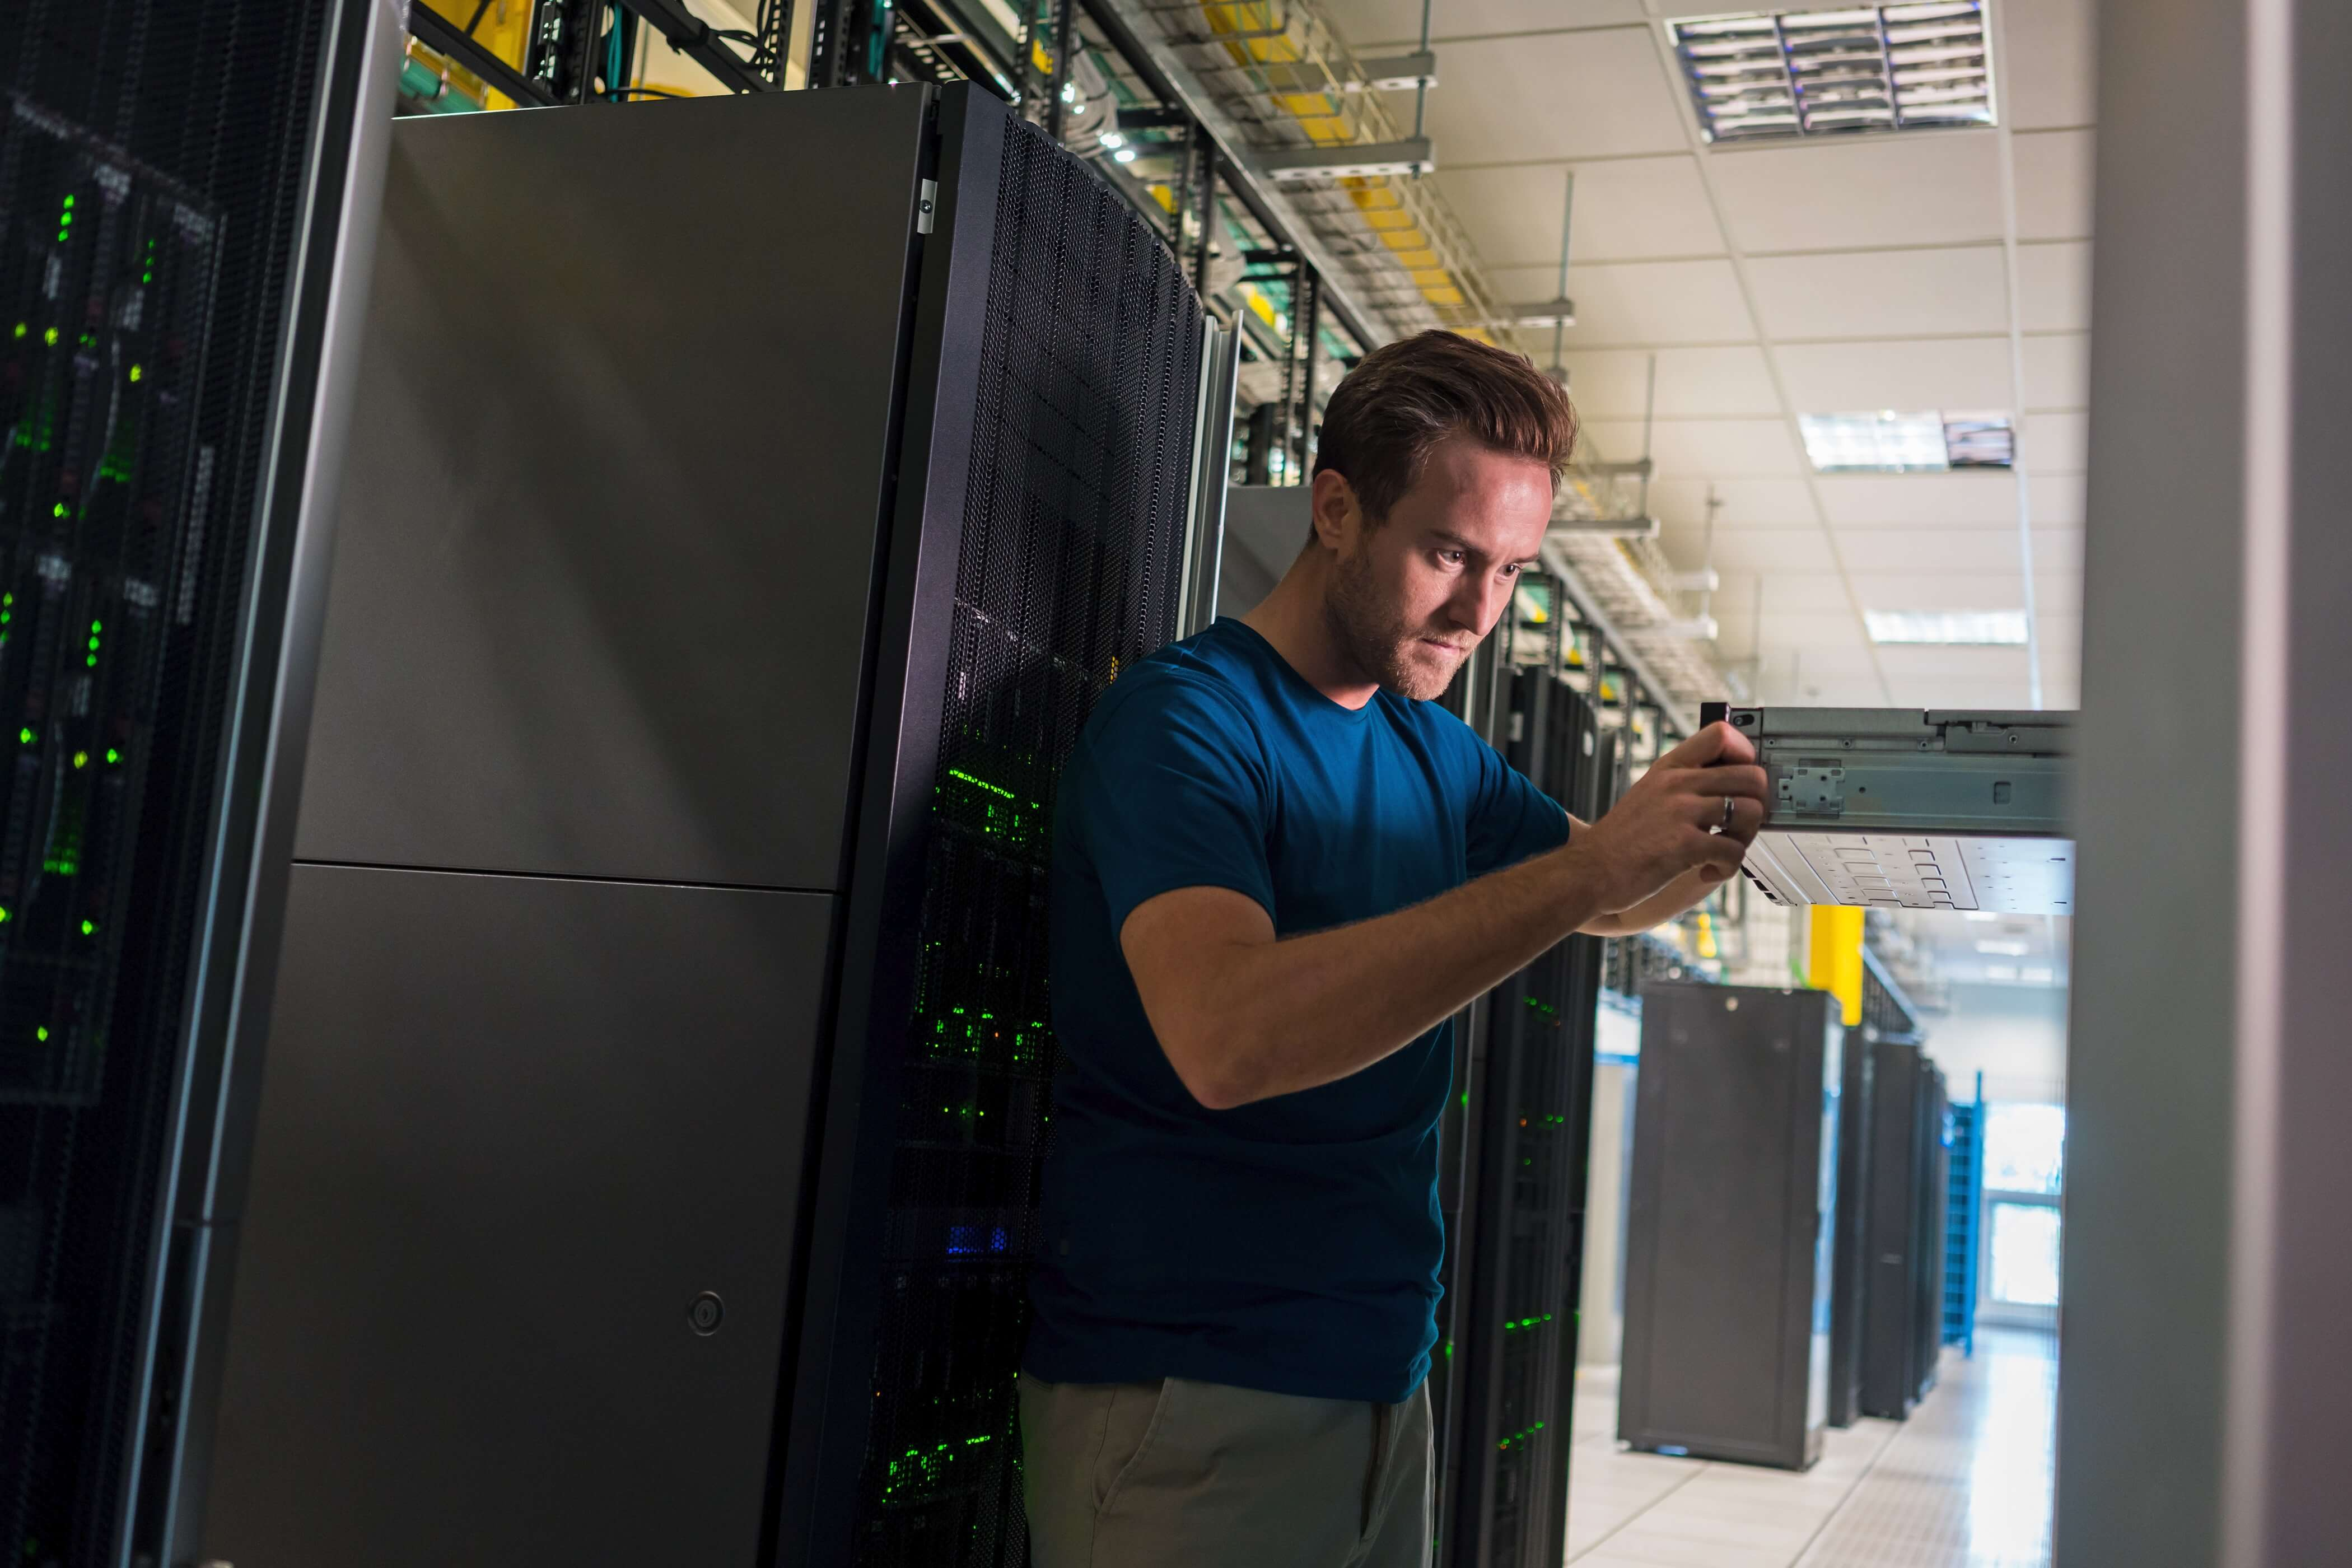 cloud data center worker